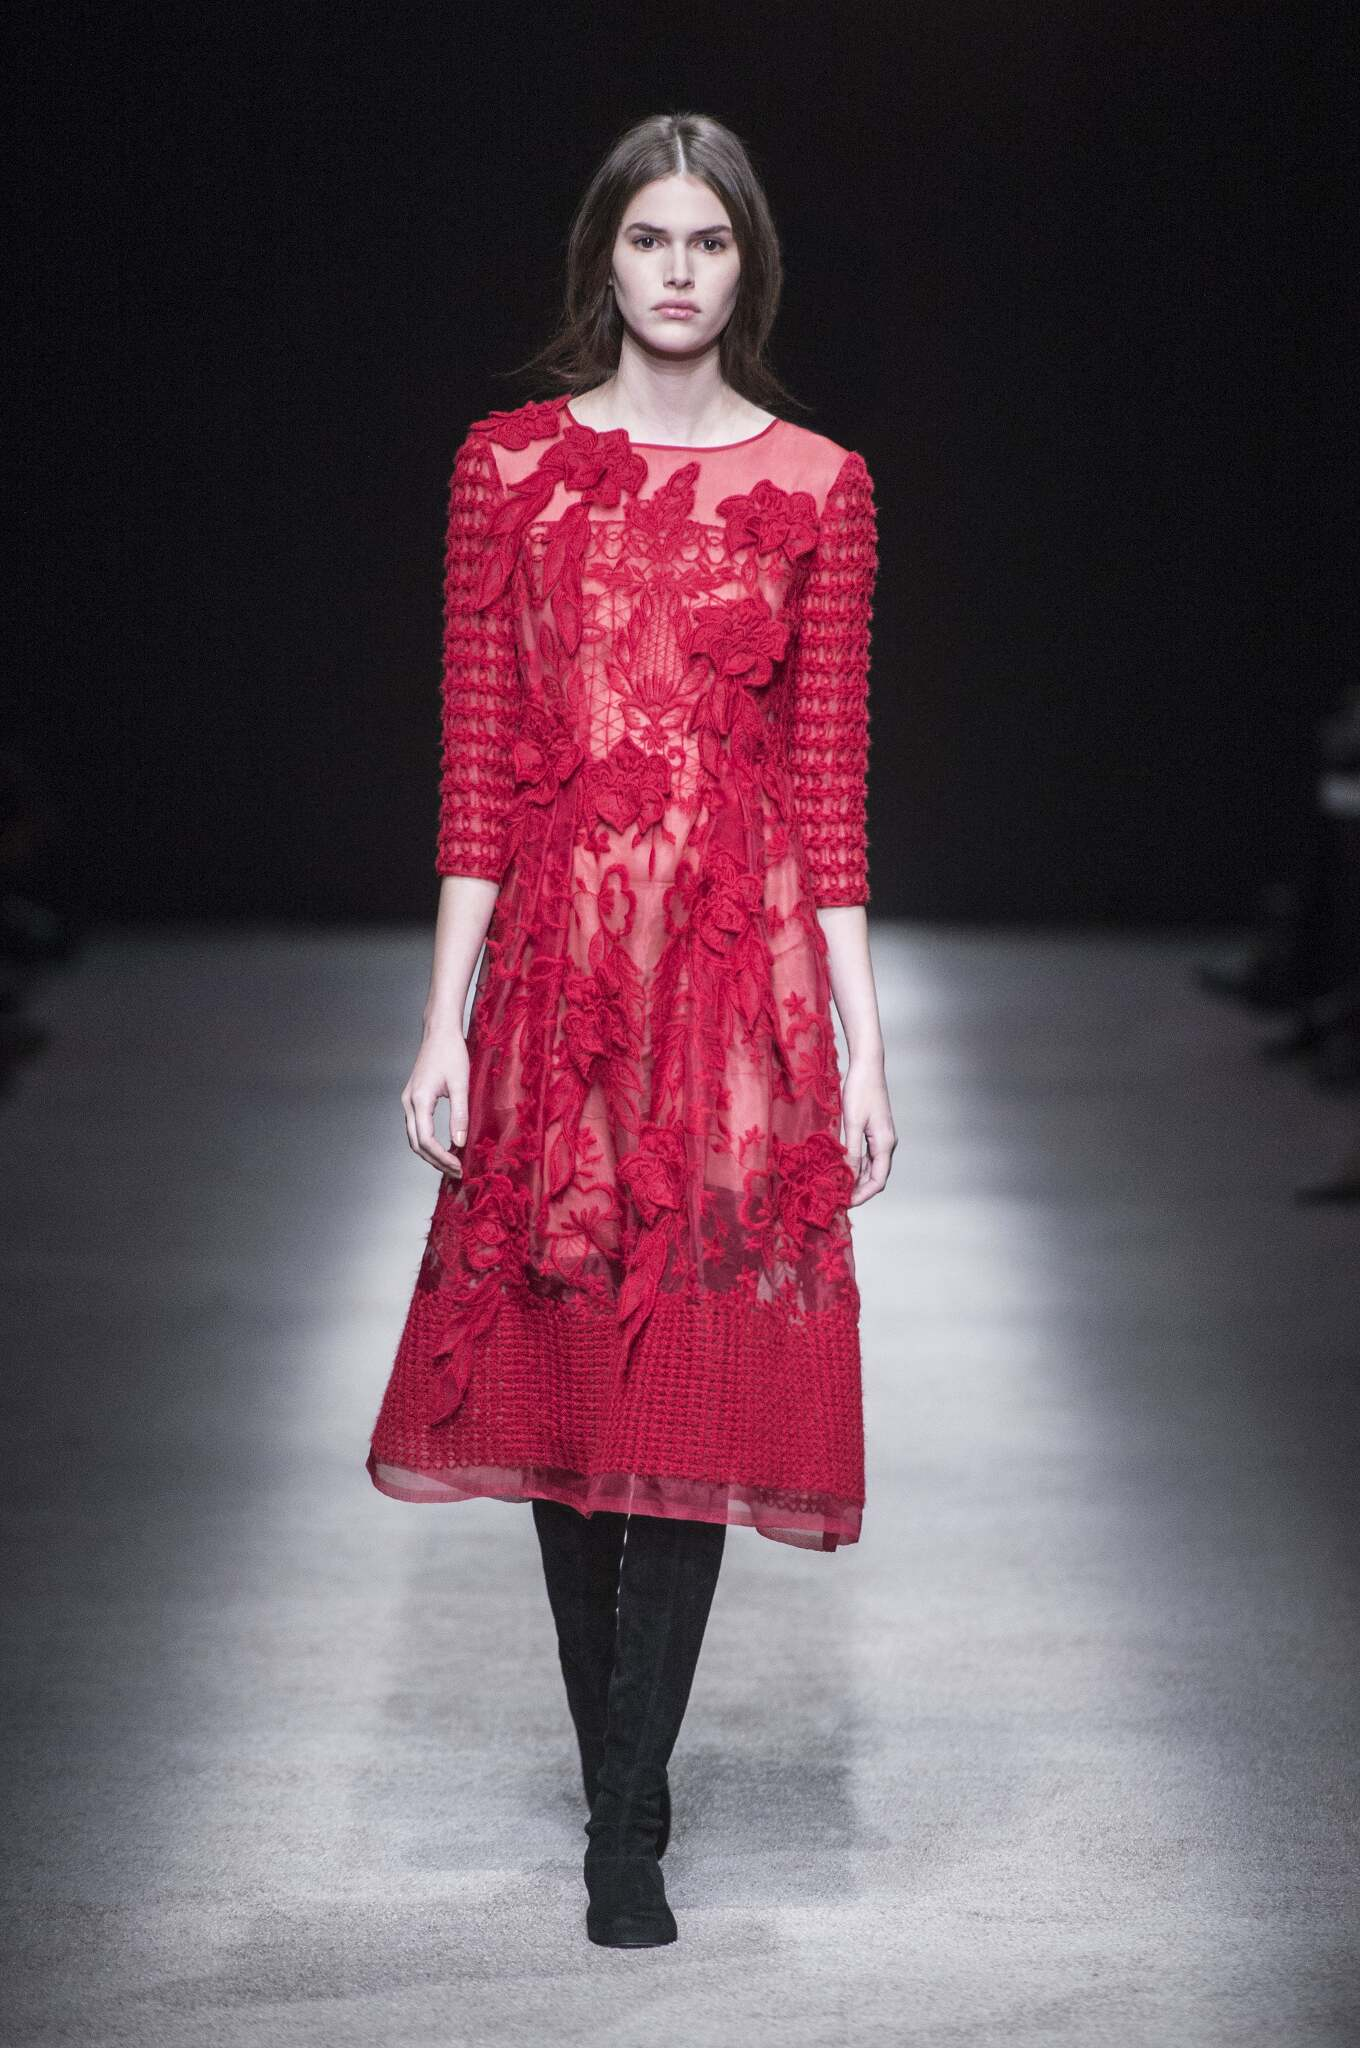 Runway Alberta Ferretti Fall Winter 2015 16 Women's Collection Milan Fashion Week